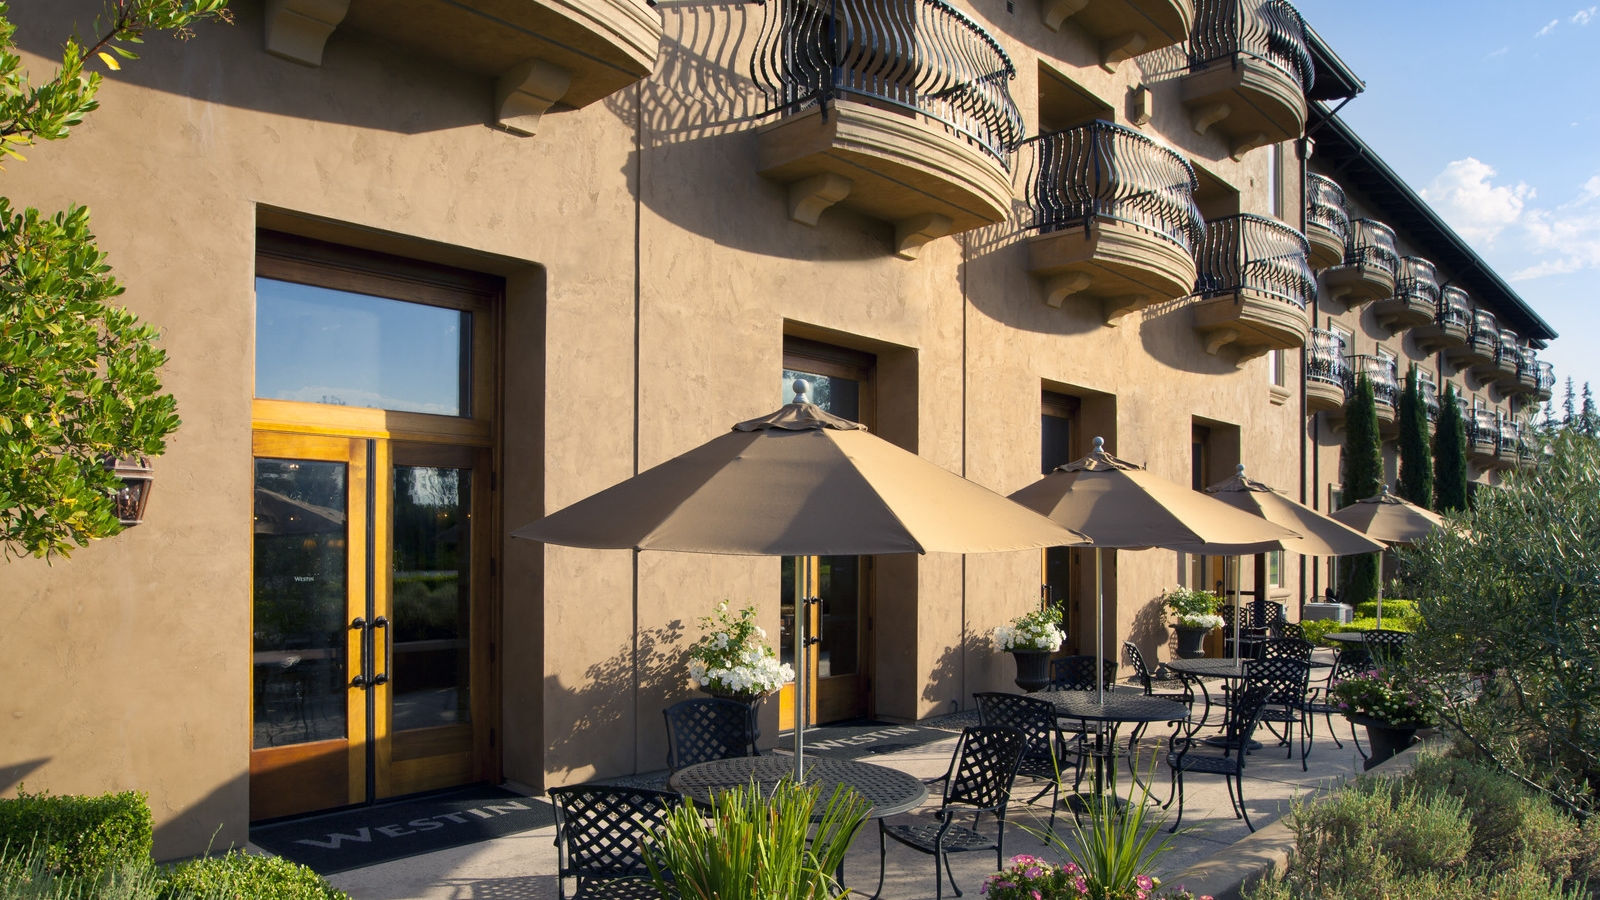 The Westin Sacramento - Exterior Patio